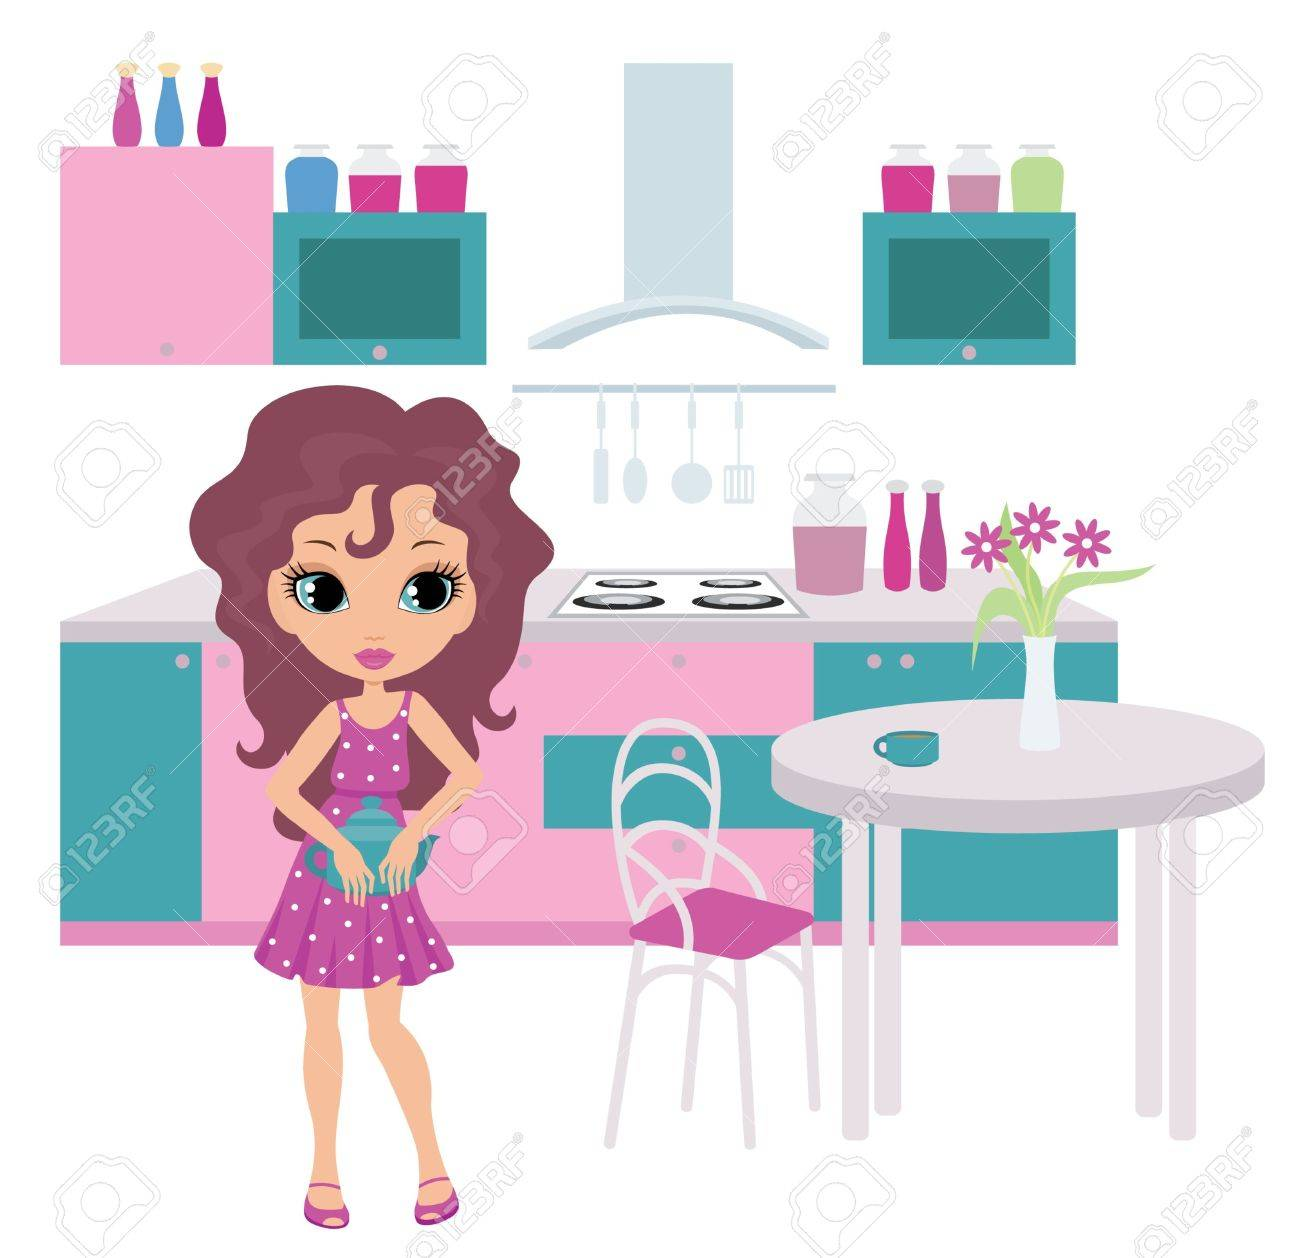 Cartoon girl on kitchen bears a teapot. Stock Vector - 10831714